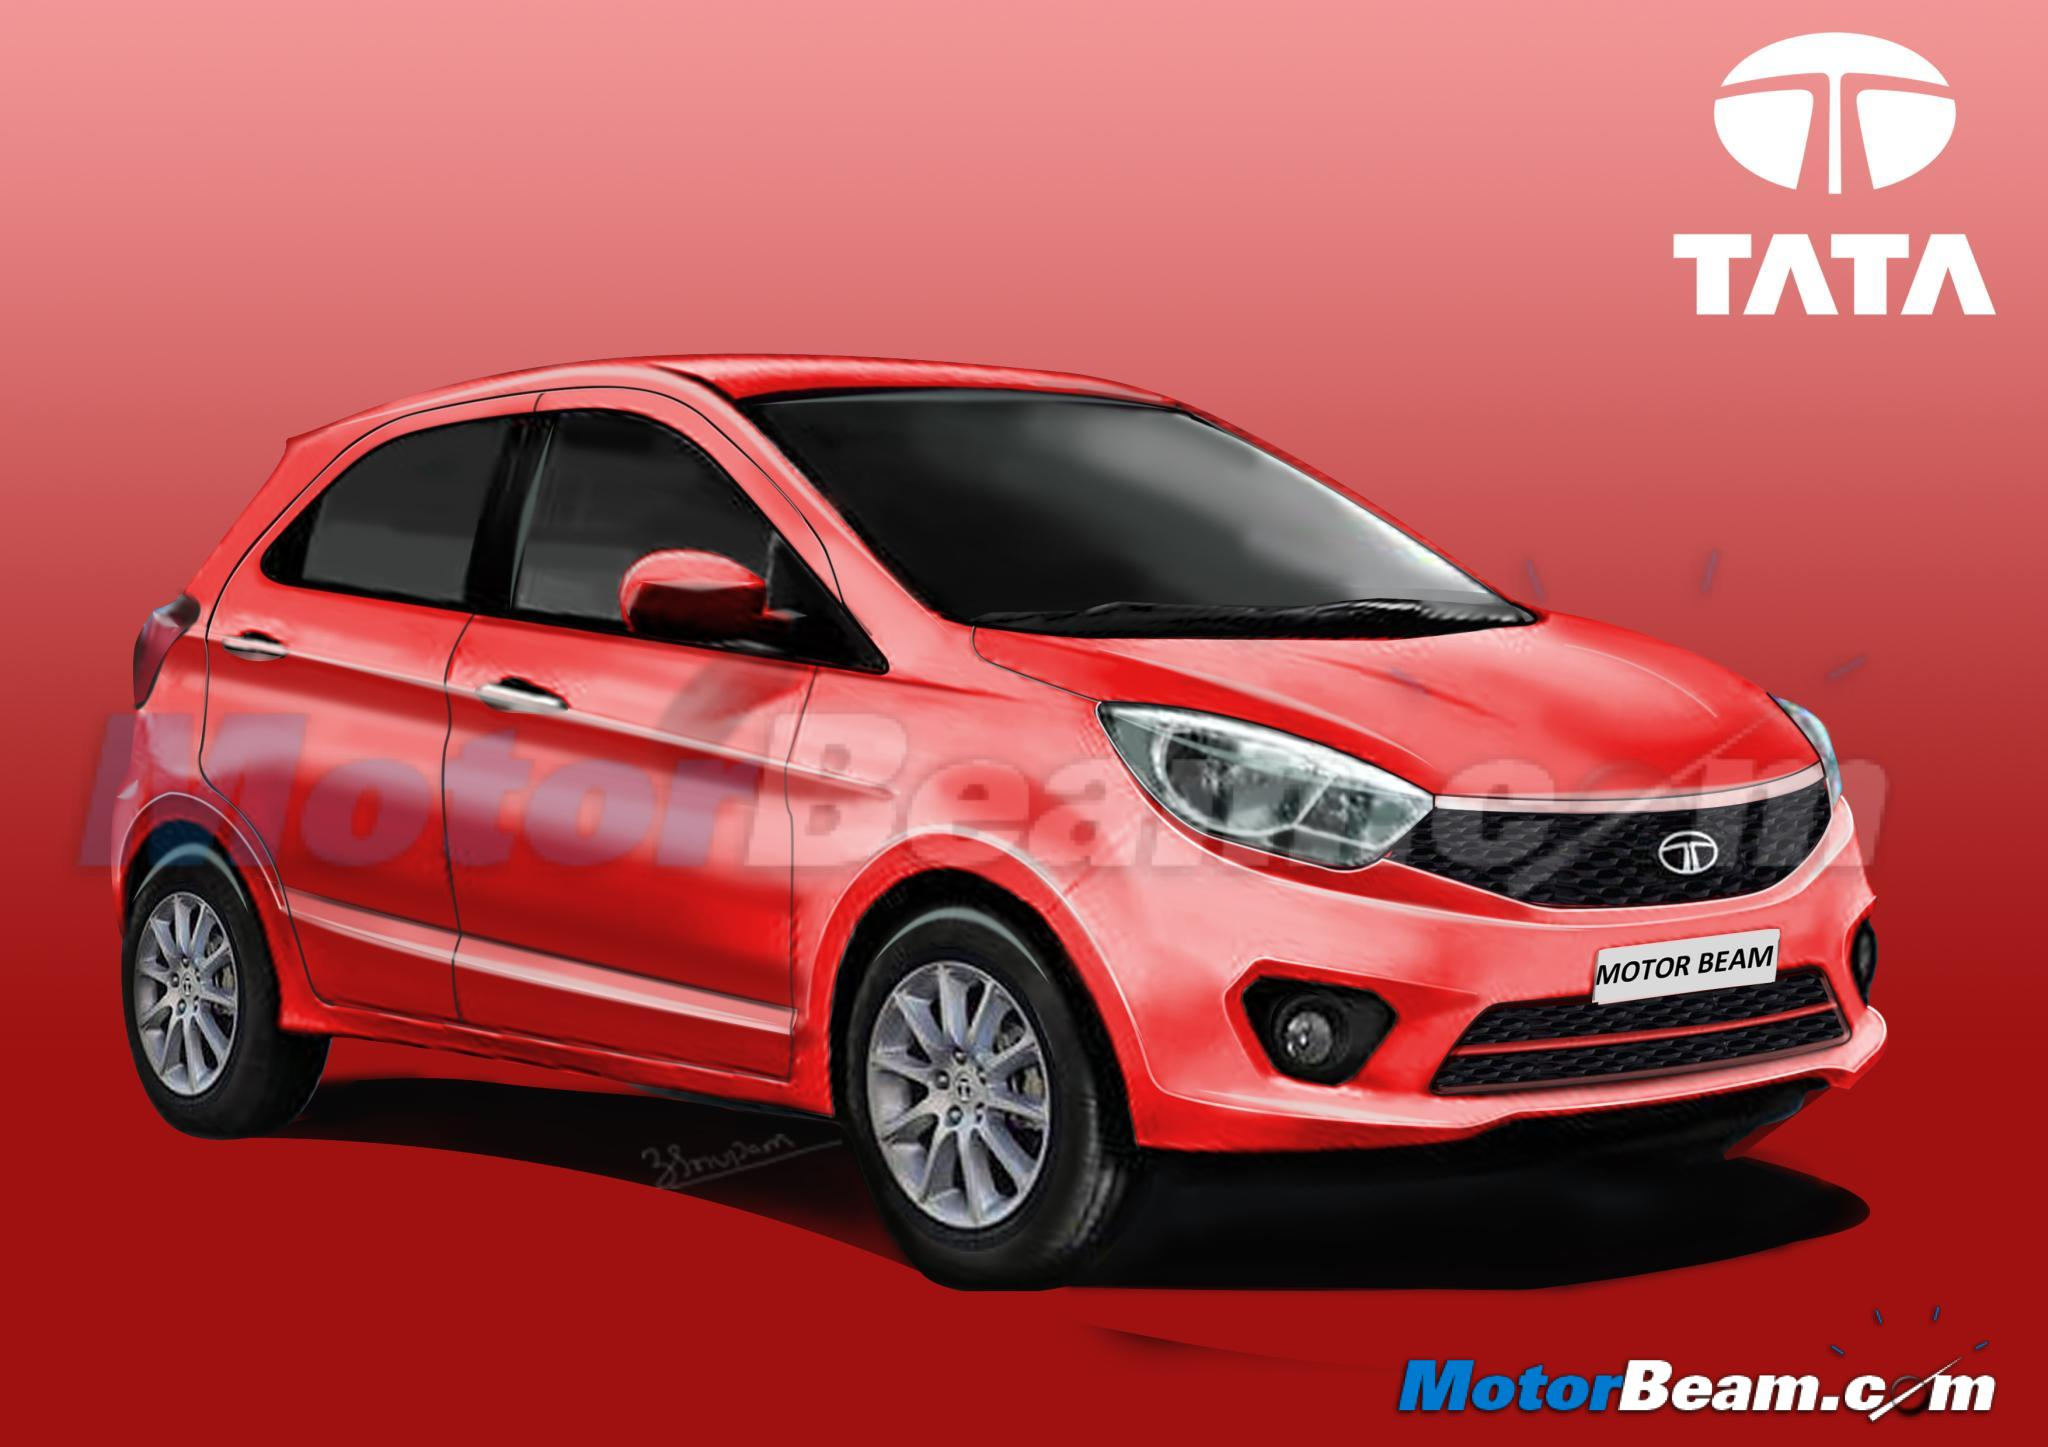 2016-Tata-Kite-Hatchback